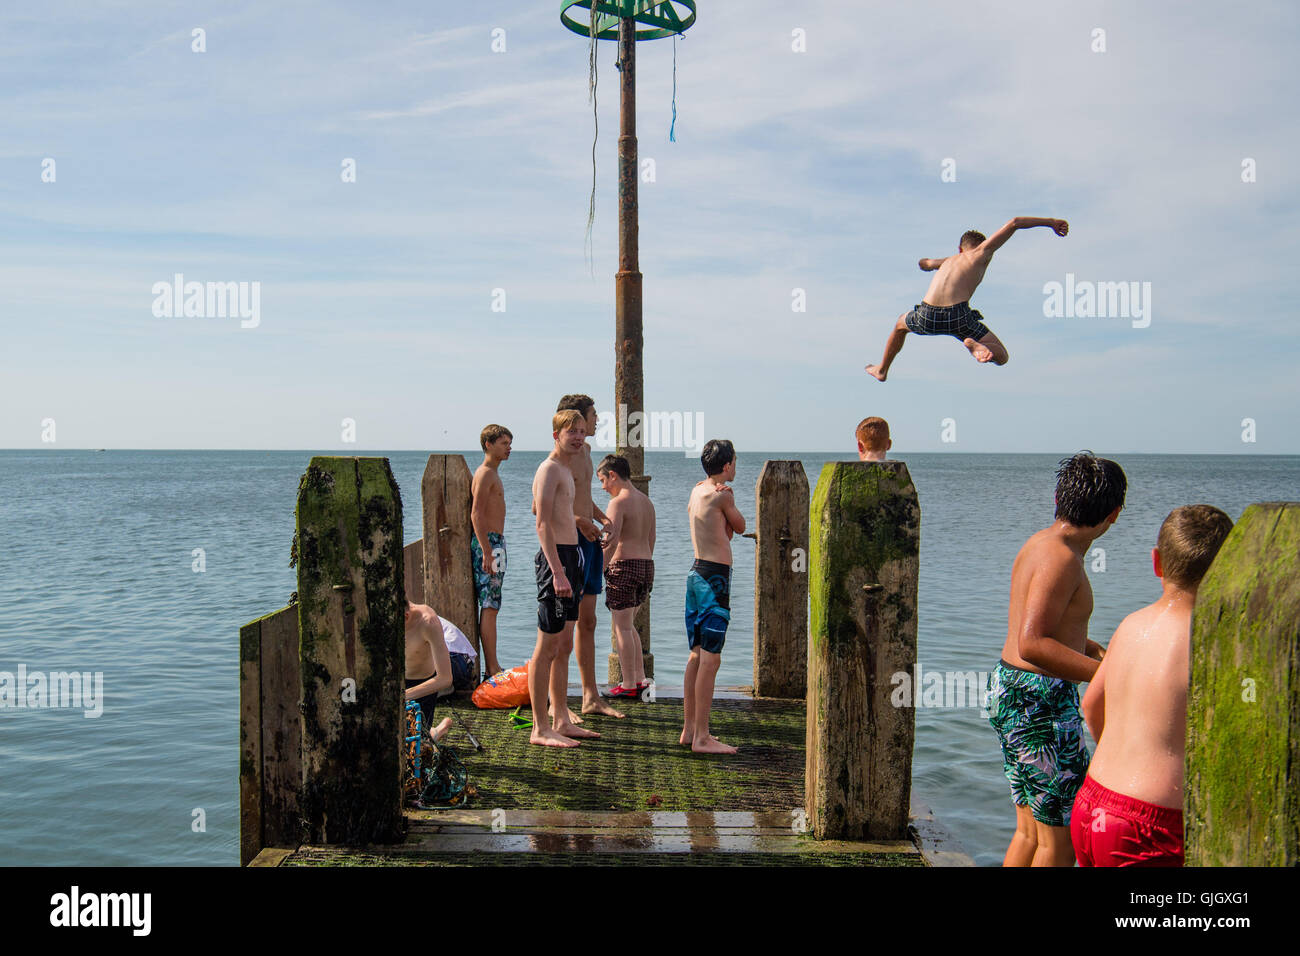 Aberystwyth, Wales, UK. 16th August, 2016. UK Weather: Teenagers on their long summer holidays cool off on a hot Stock Photo